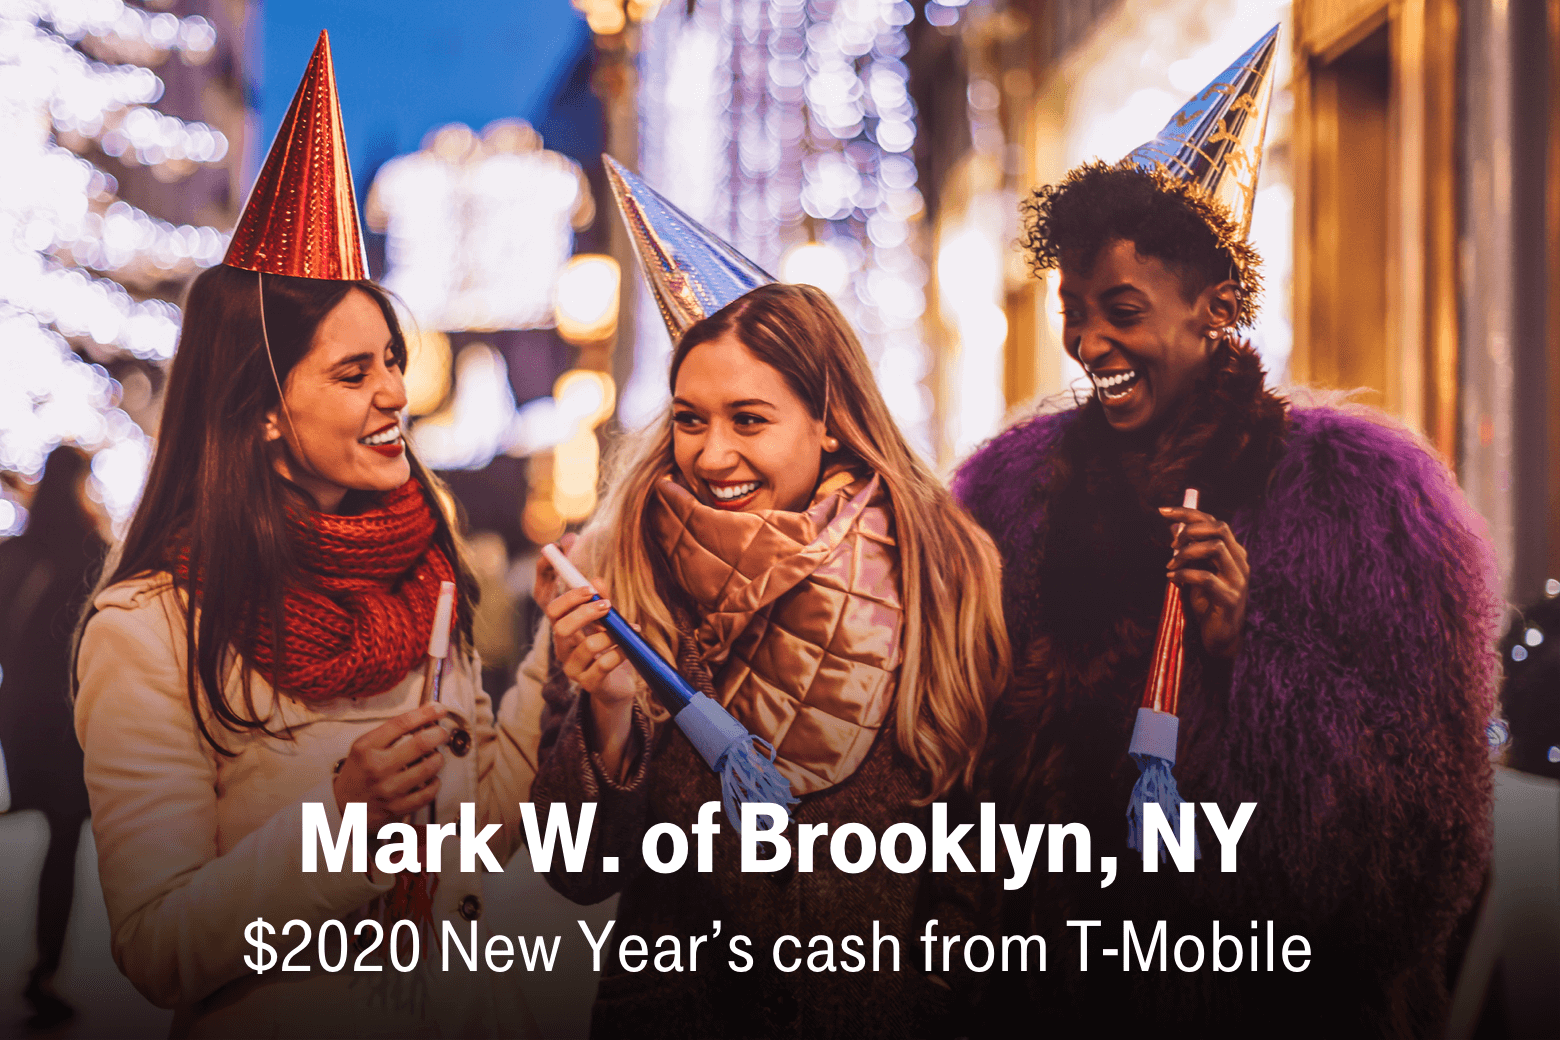 Mark W of Brooklyn, NY. $2020 New Year's cash from T-Mobile.